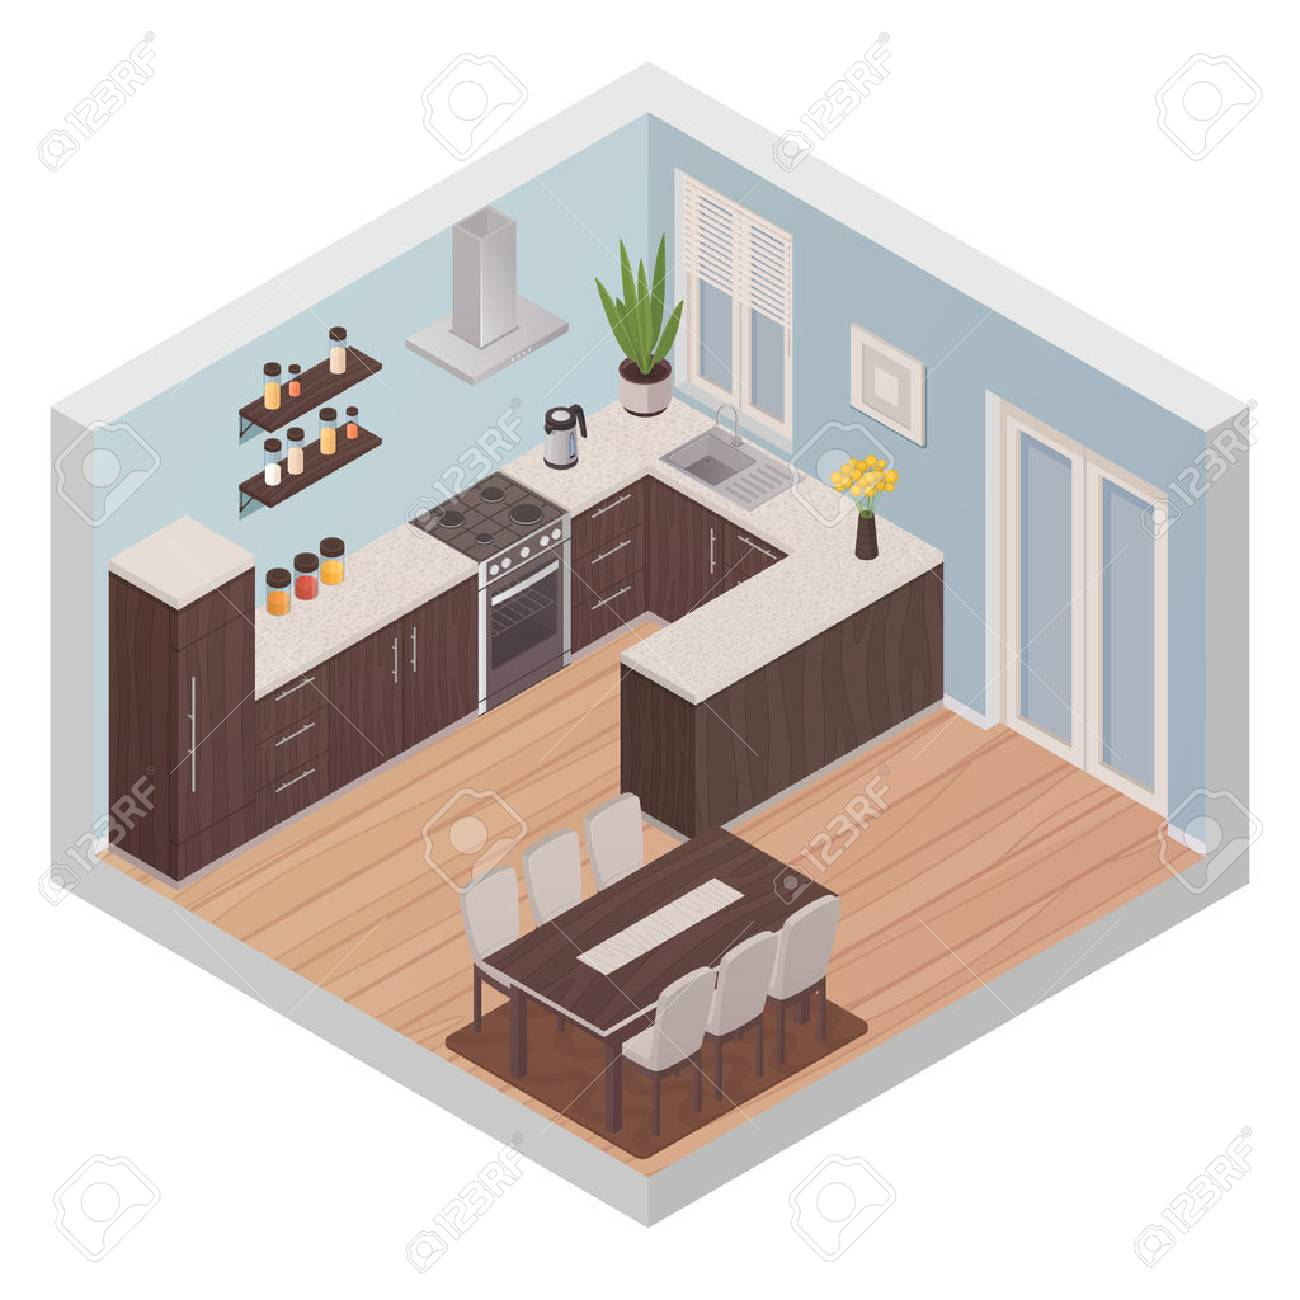 Modern Kitchen Interior Isometric Design Concept With Cooking